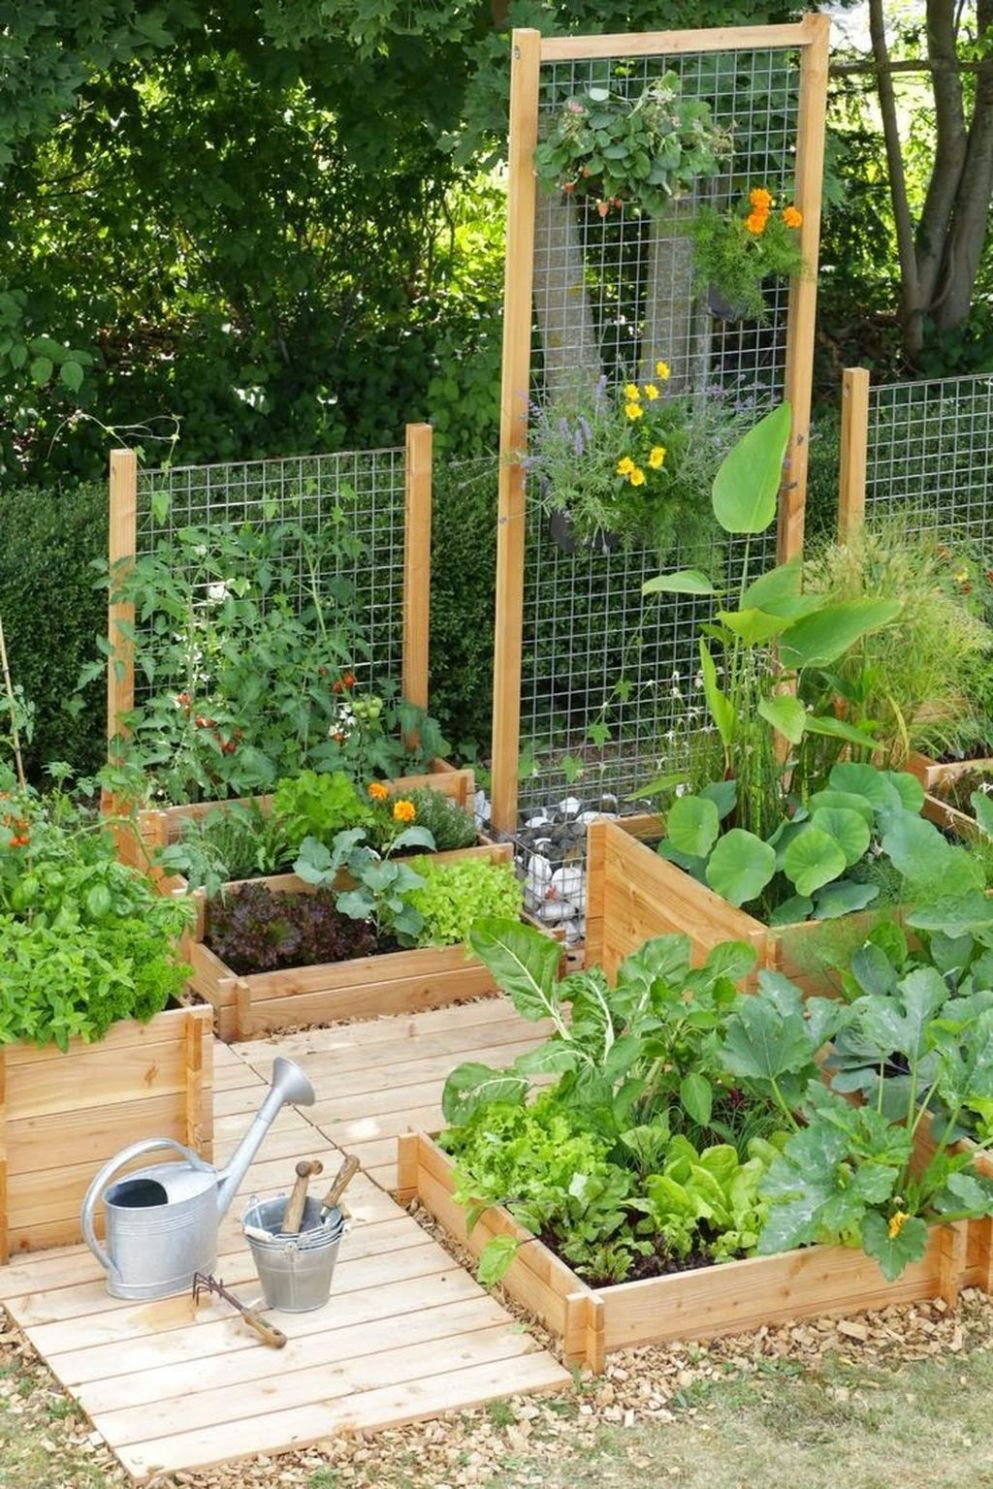 9+ Cozy Small Vegetable Garden Ideas On A Budget | Small ...